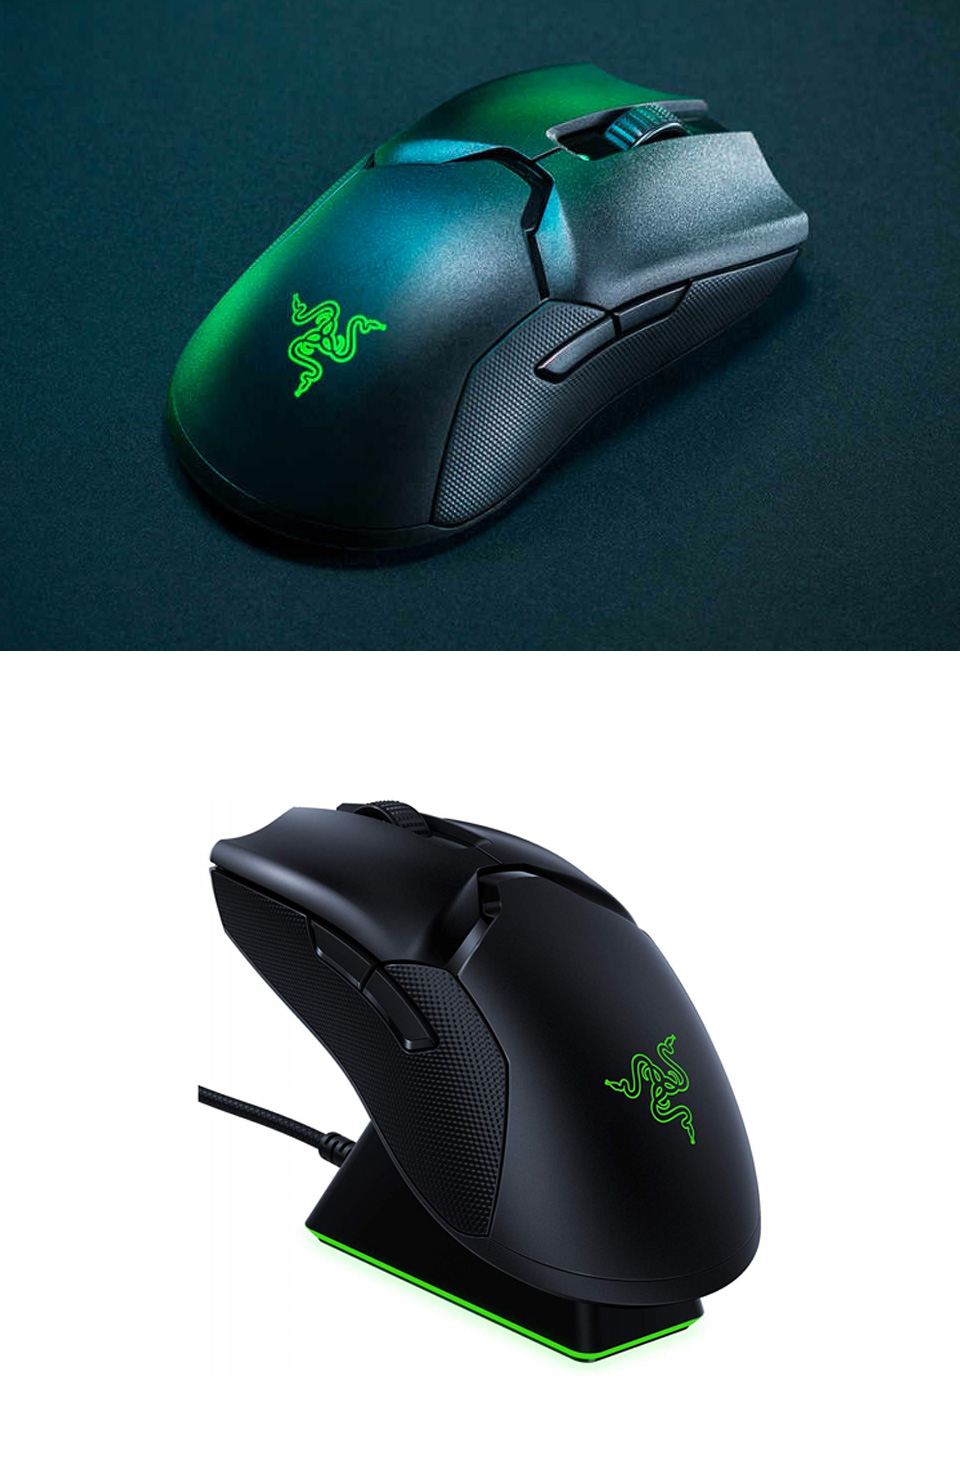 Razer Viper Ultimate Wireless Gaming Mouse with Charging Dock product